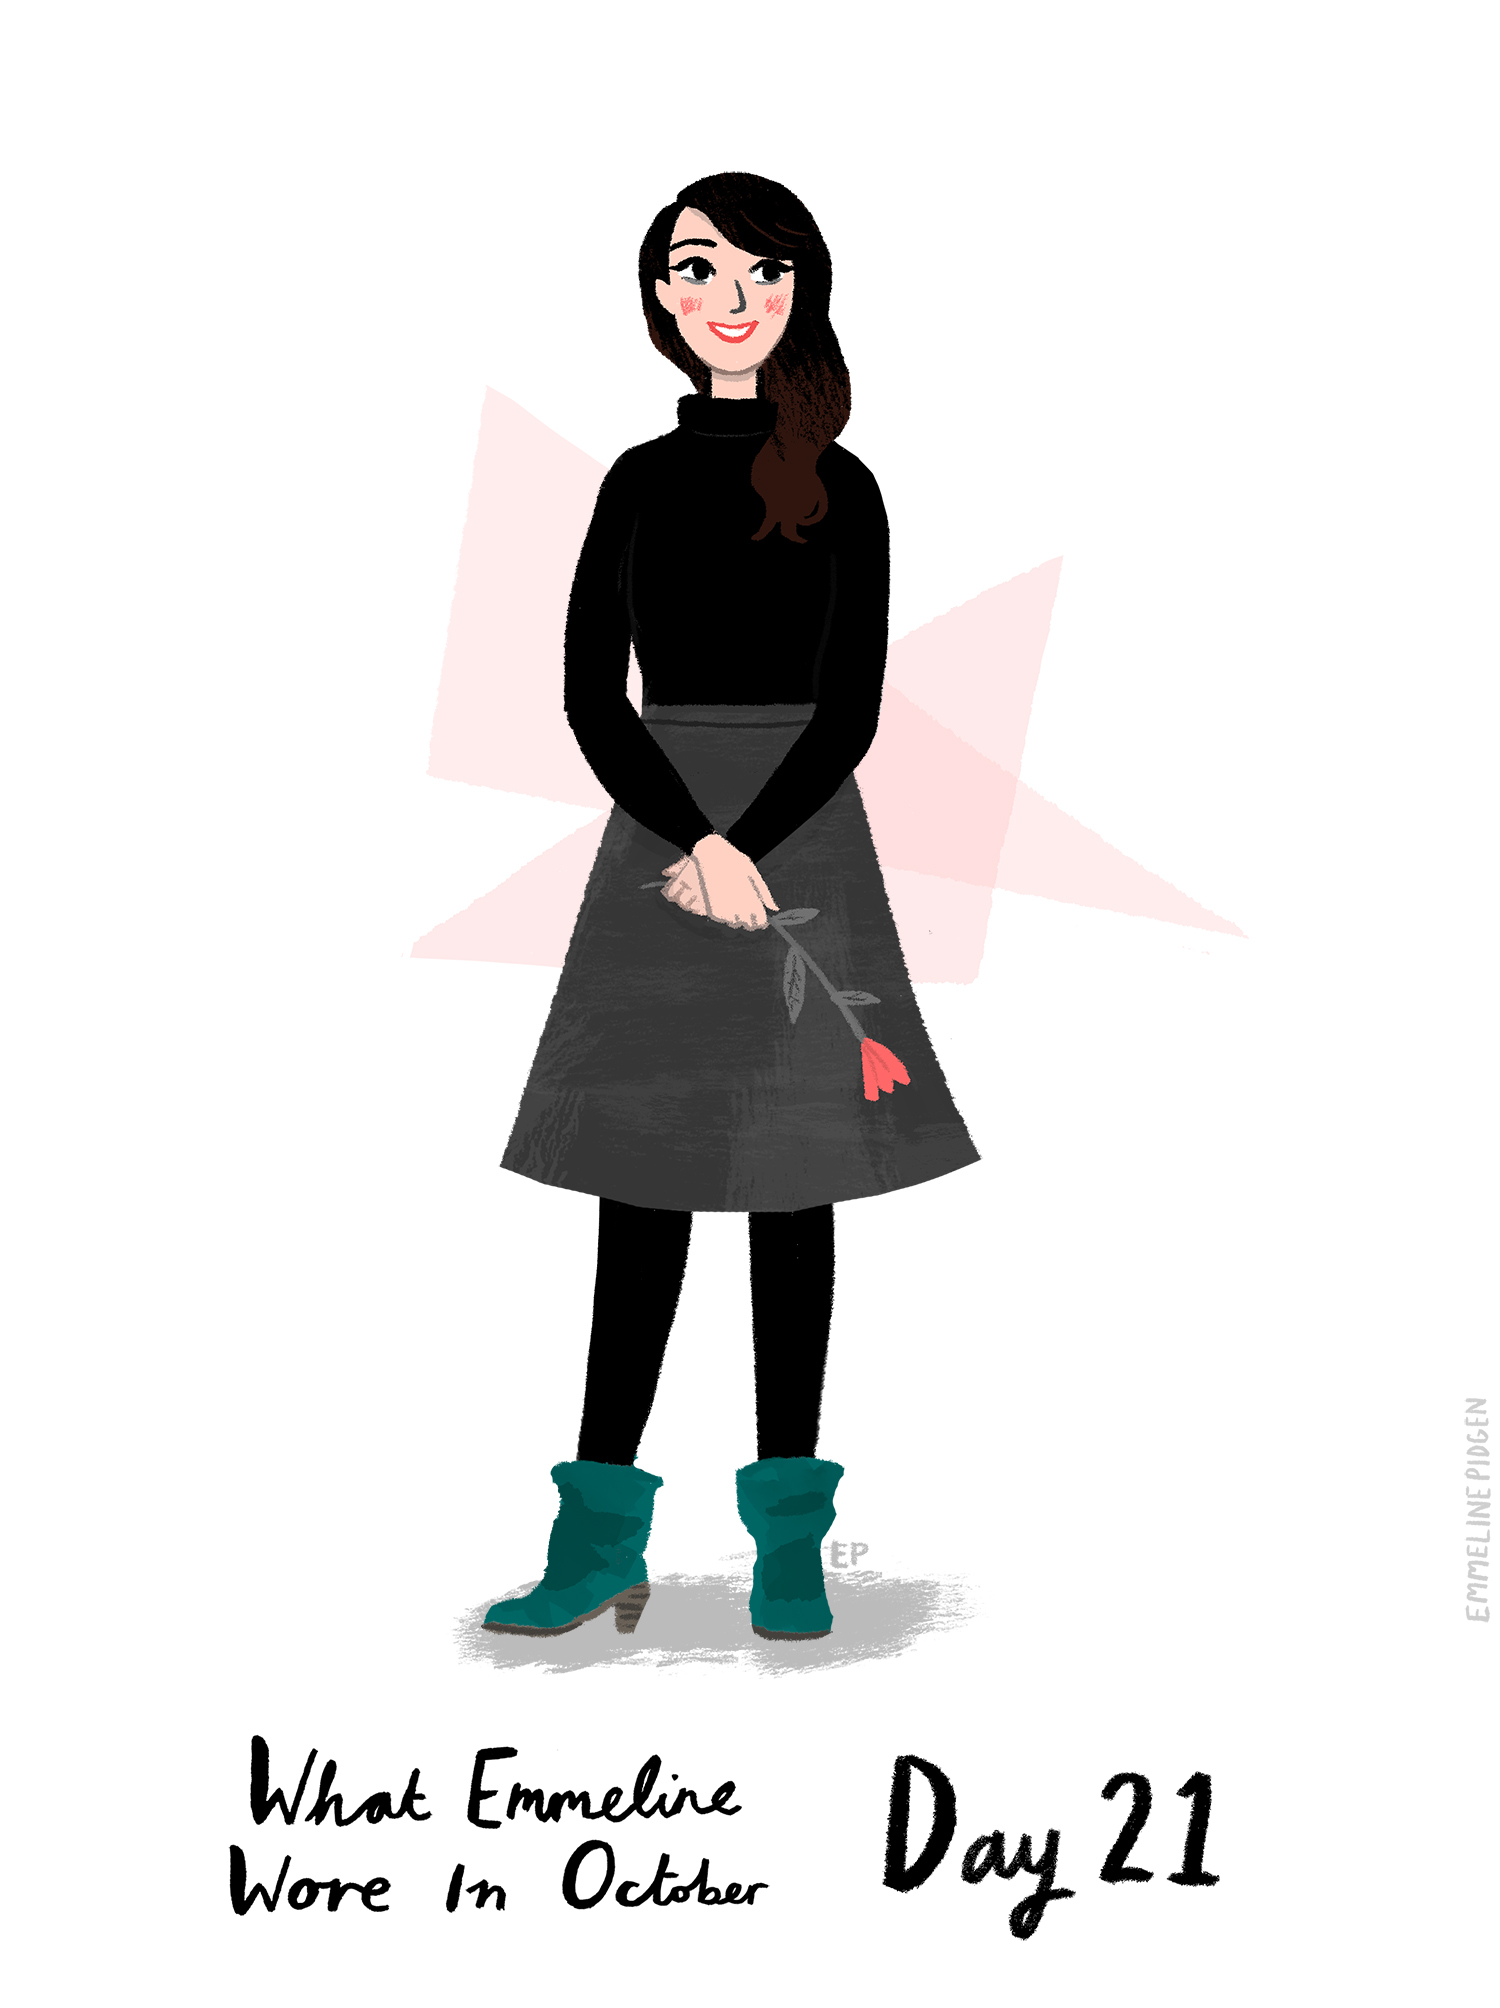 what-emmeline-wore-in-october-illustration-day-21-x-people-tree